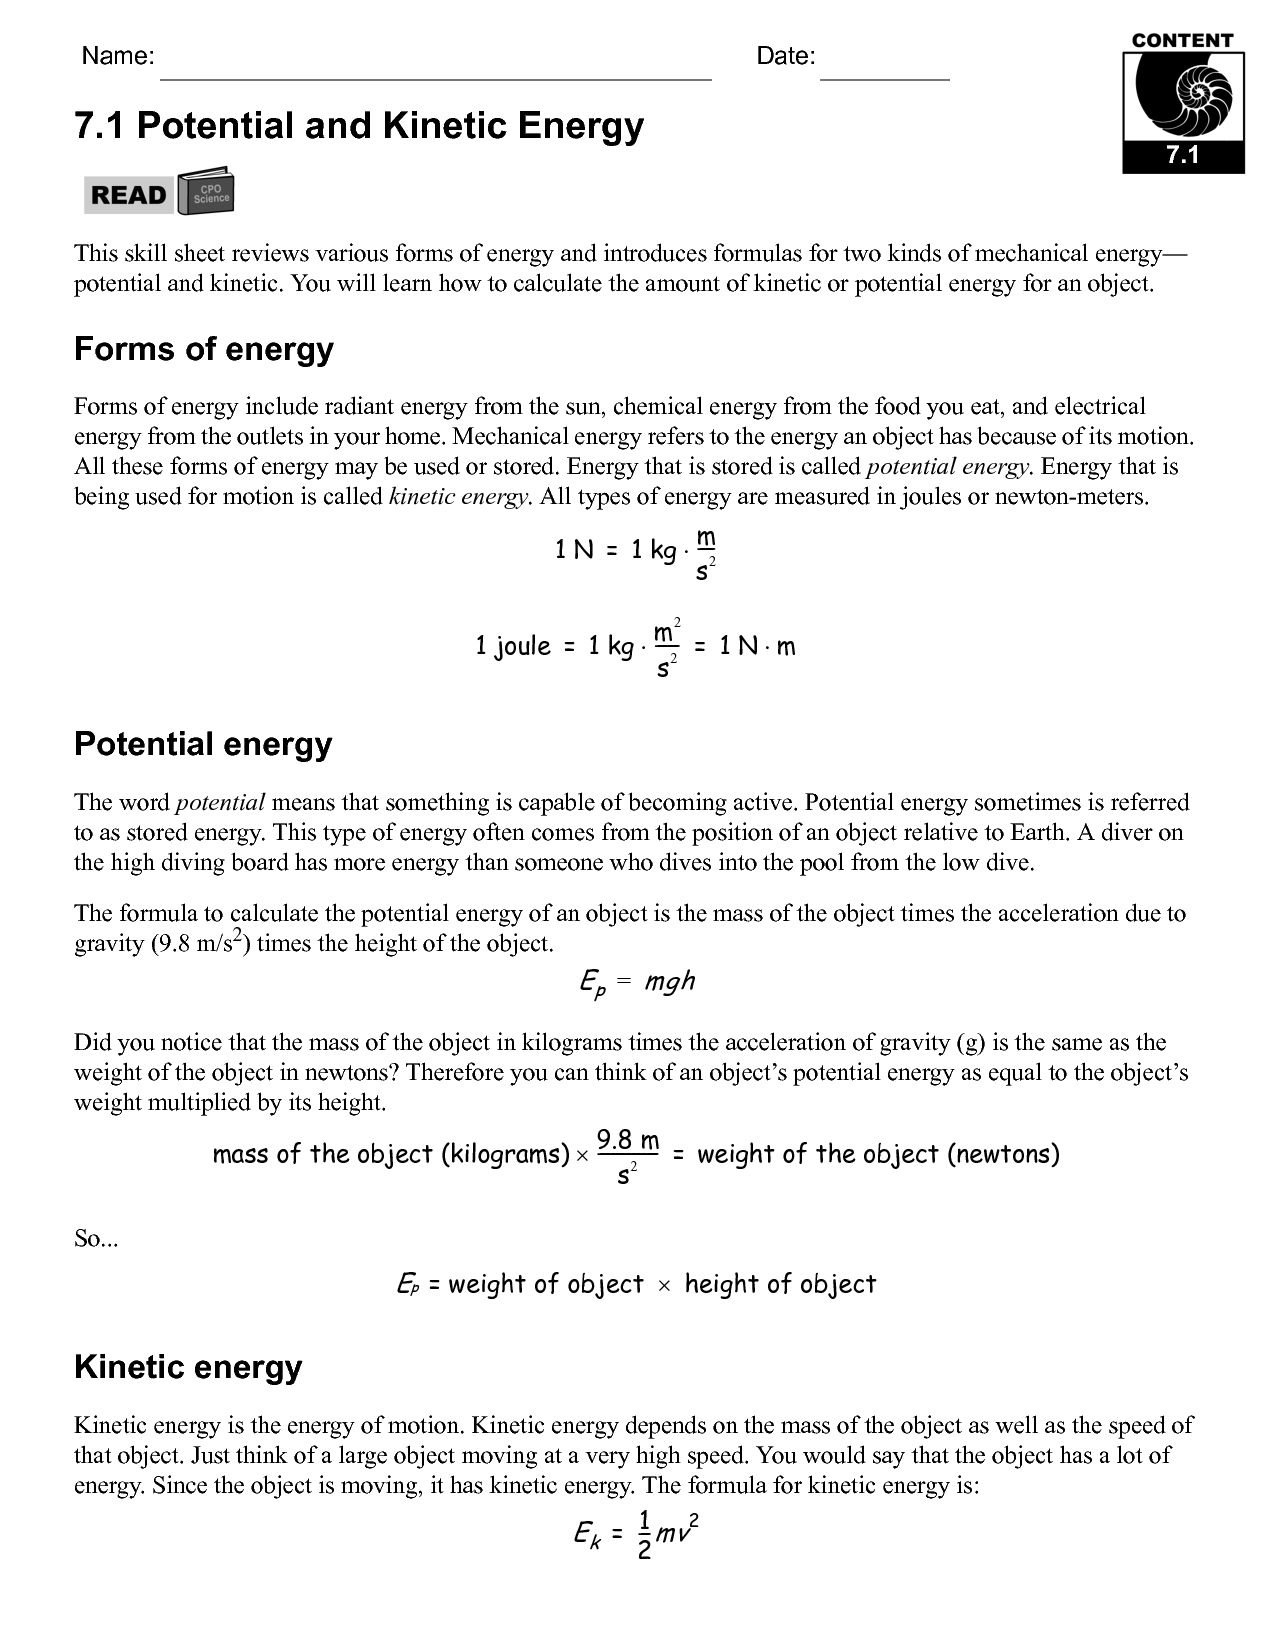 17 Best Images of Potential Energy Practice Problems Worksheet  Potential and Kinetic Energy